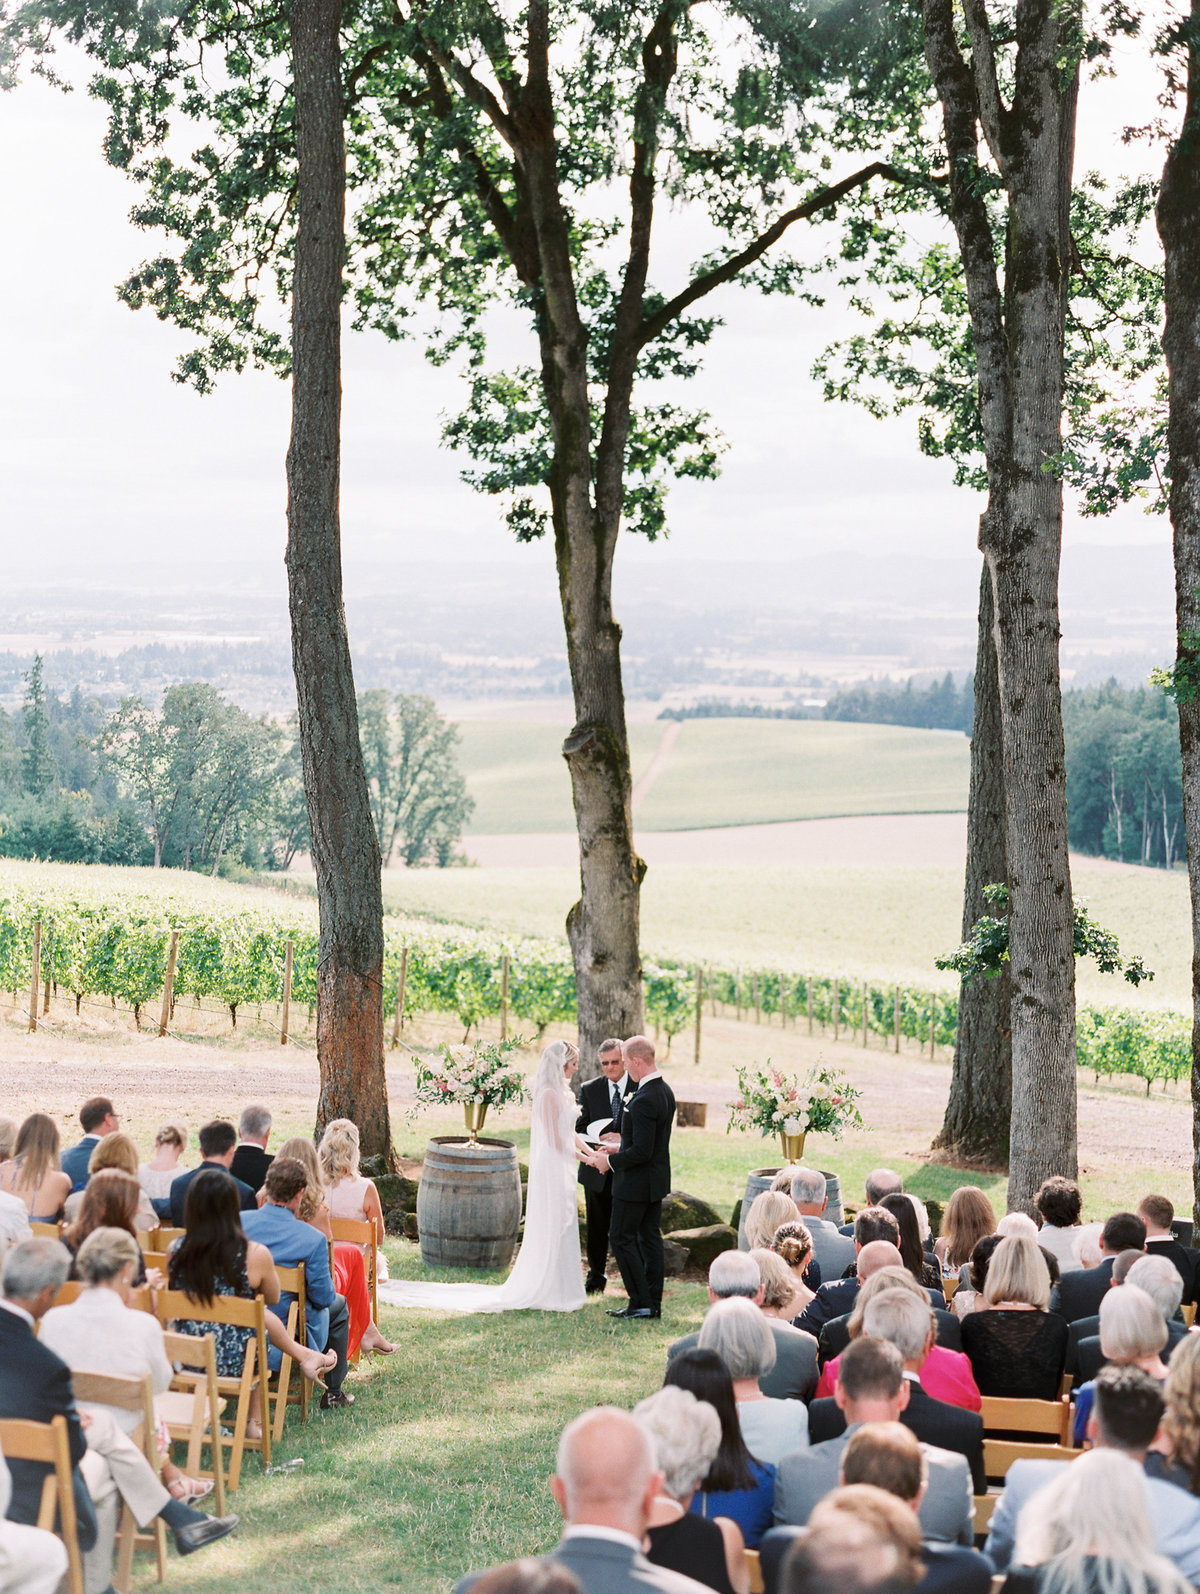 wedding at vista hills vineyard near portland oregon